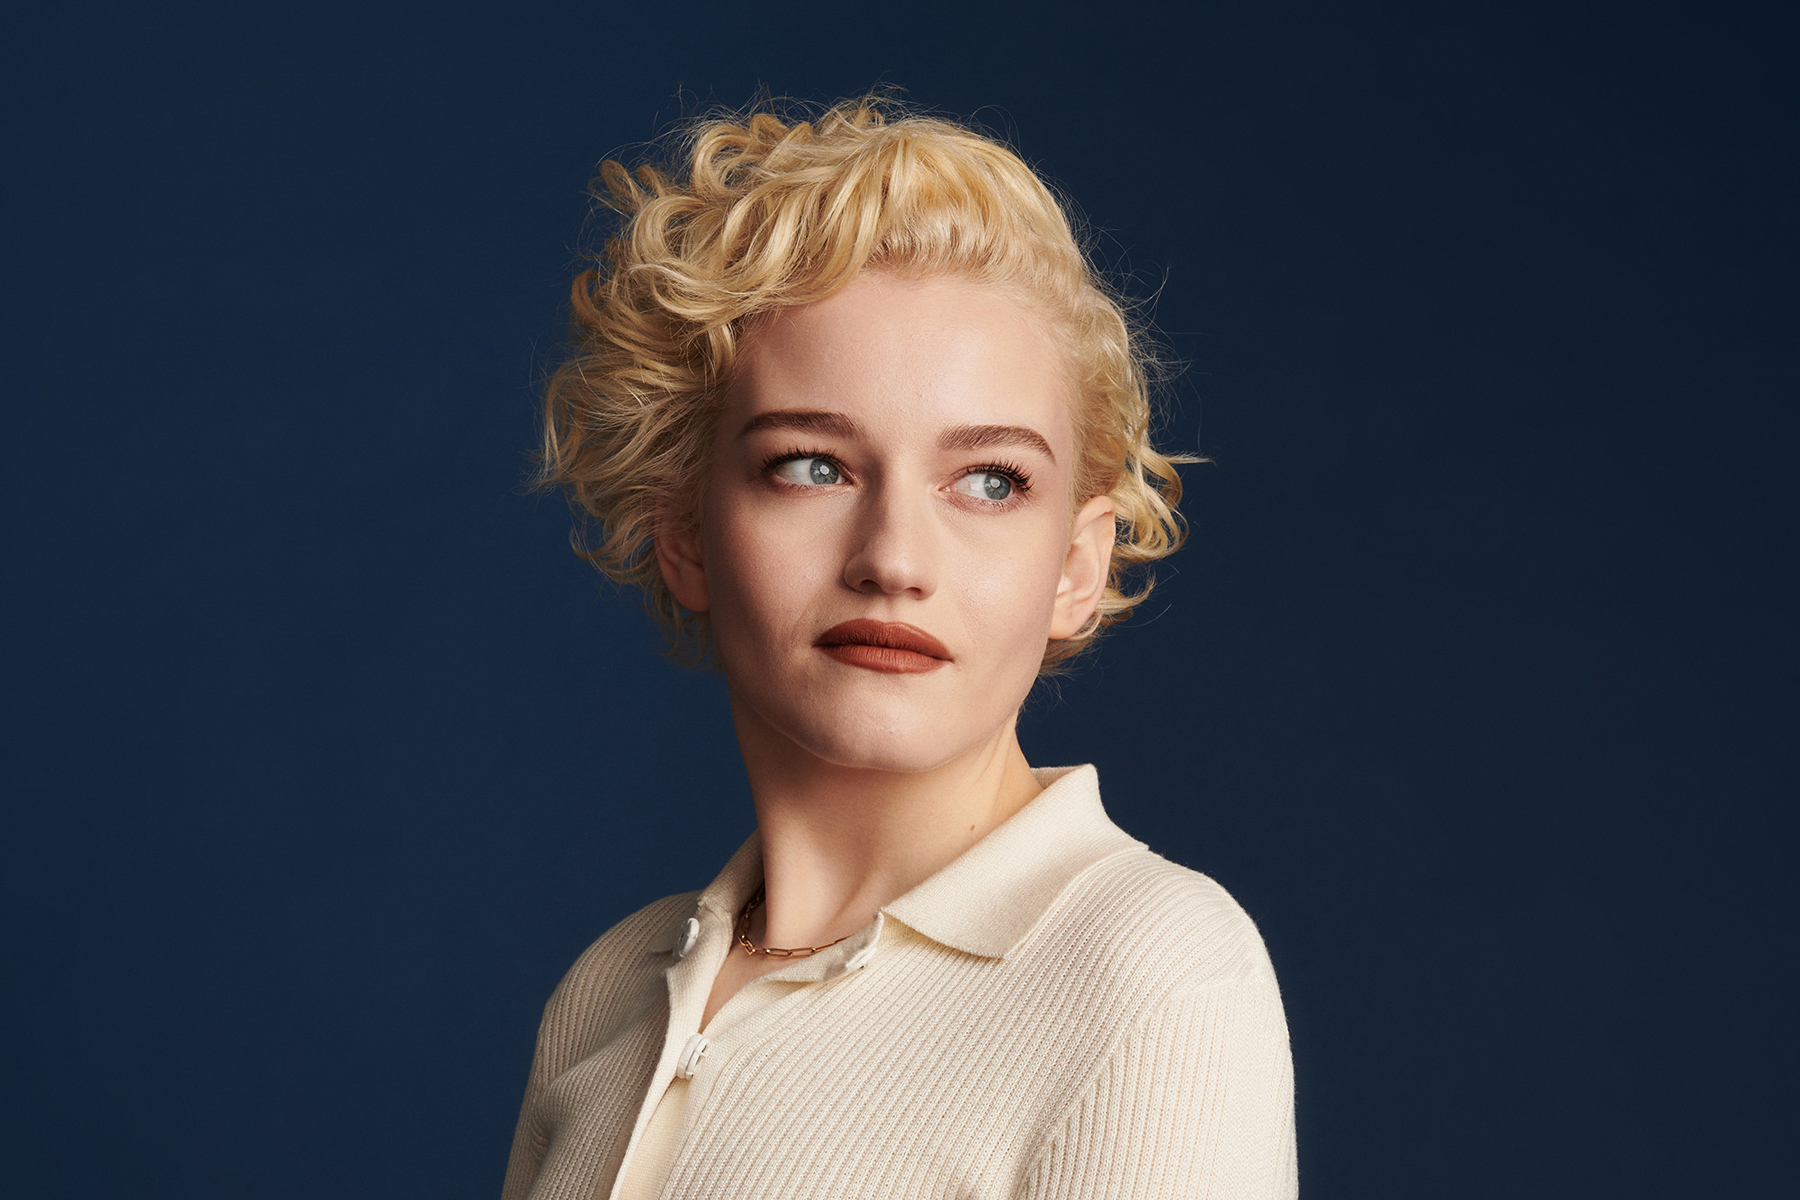 The Quiet Confidence of Julia Garner